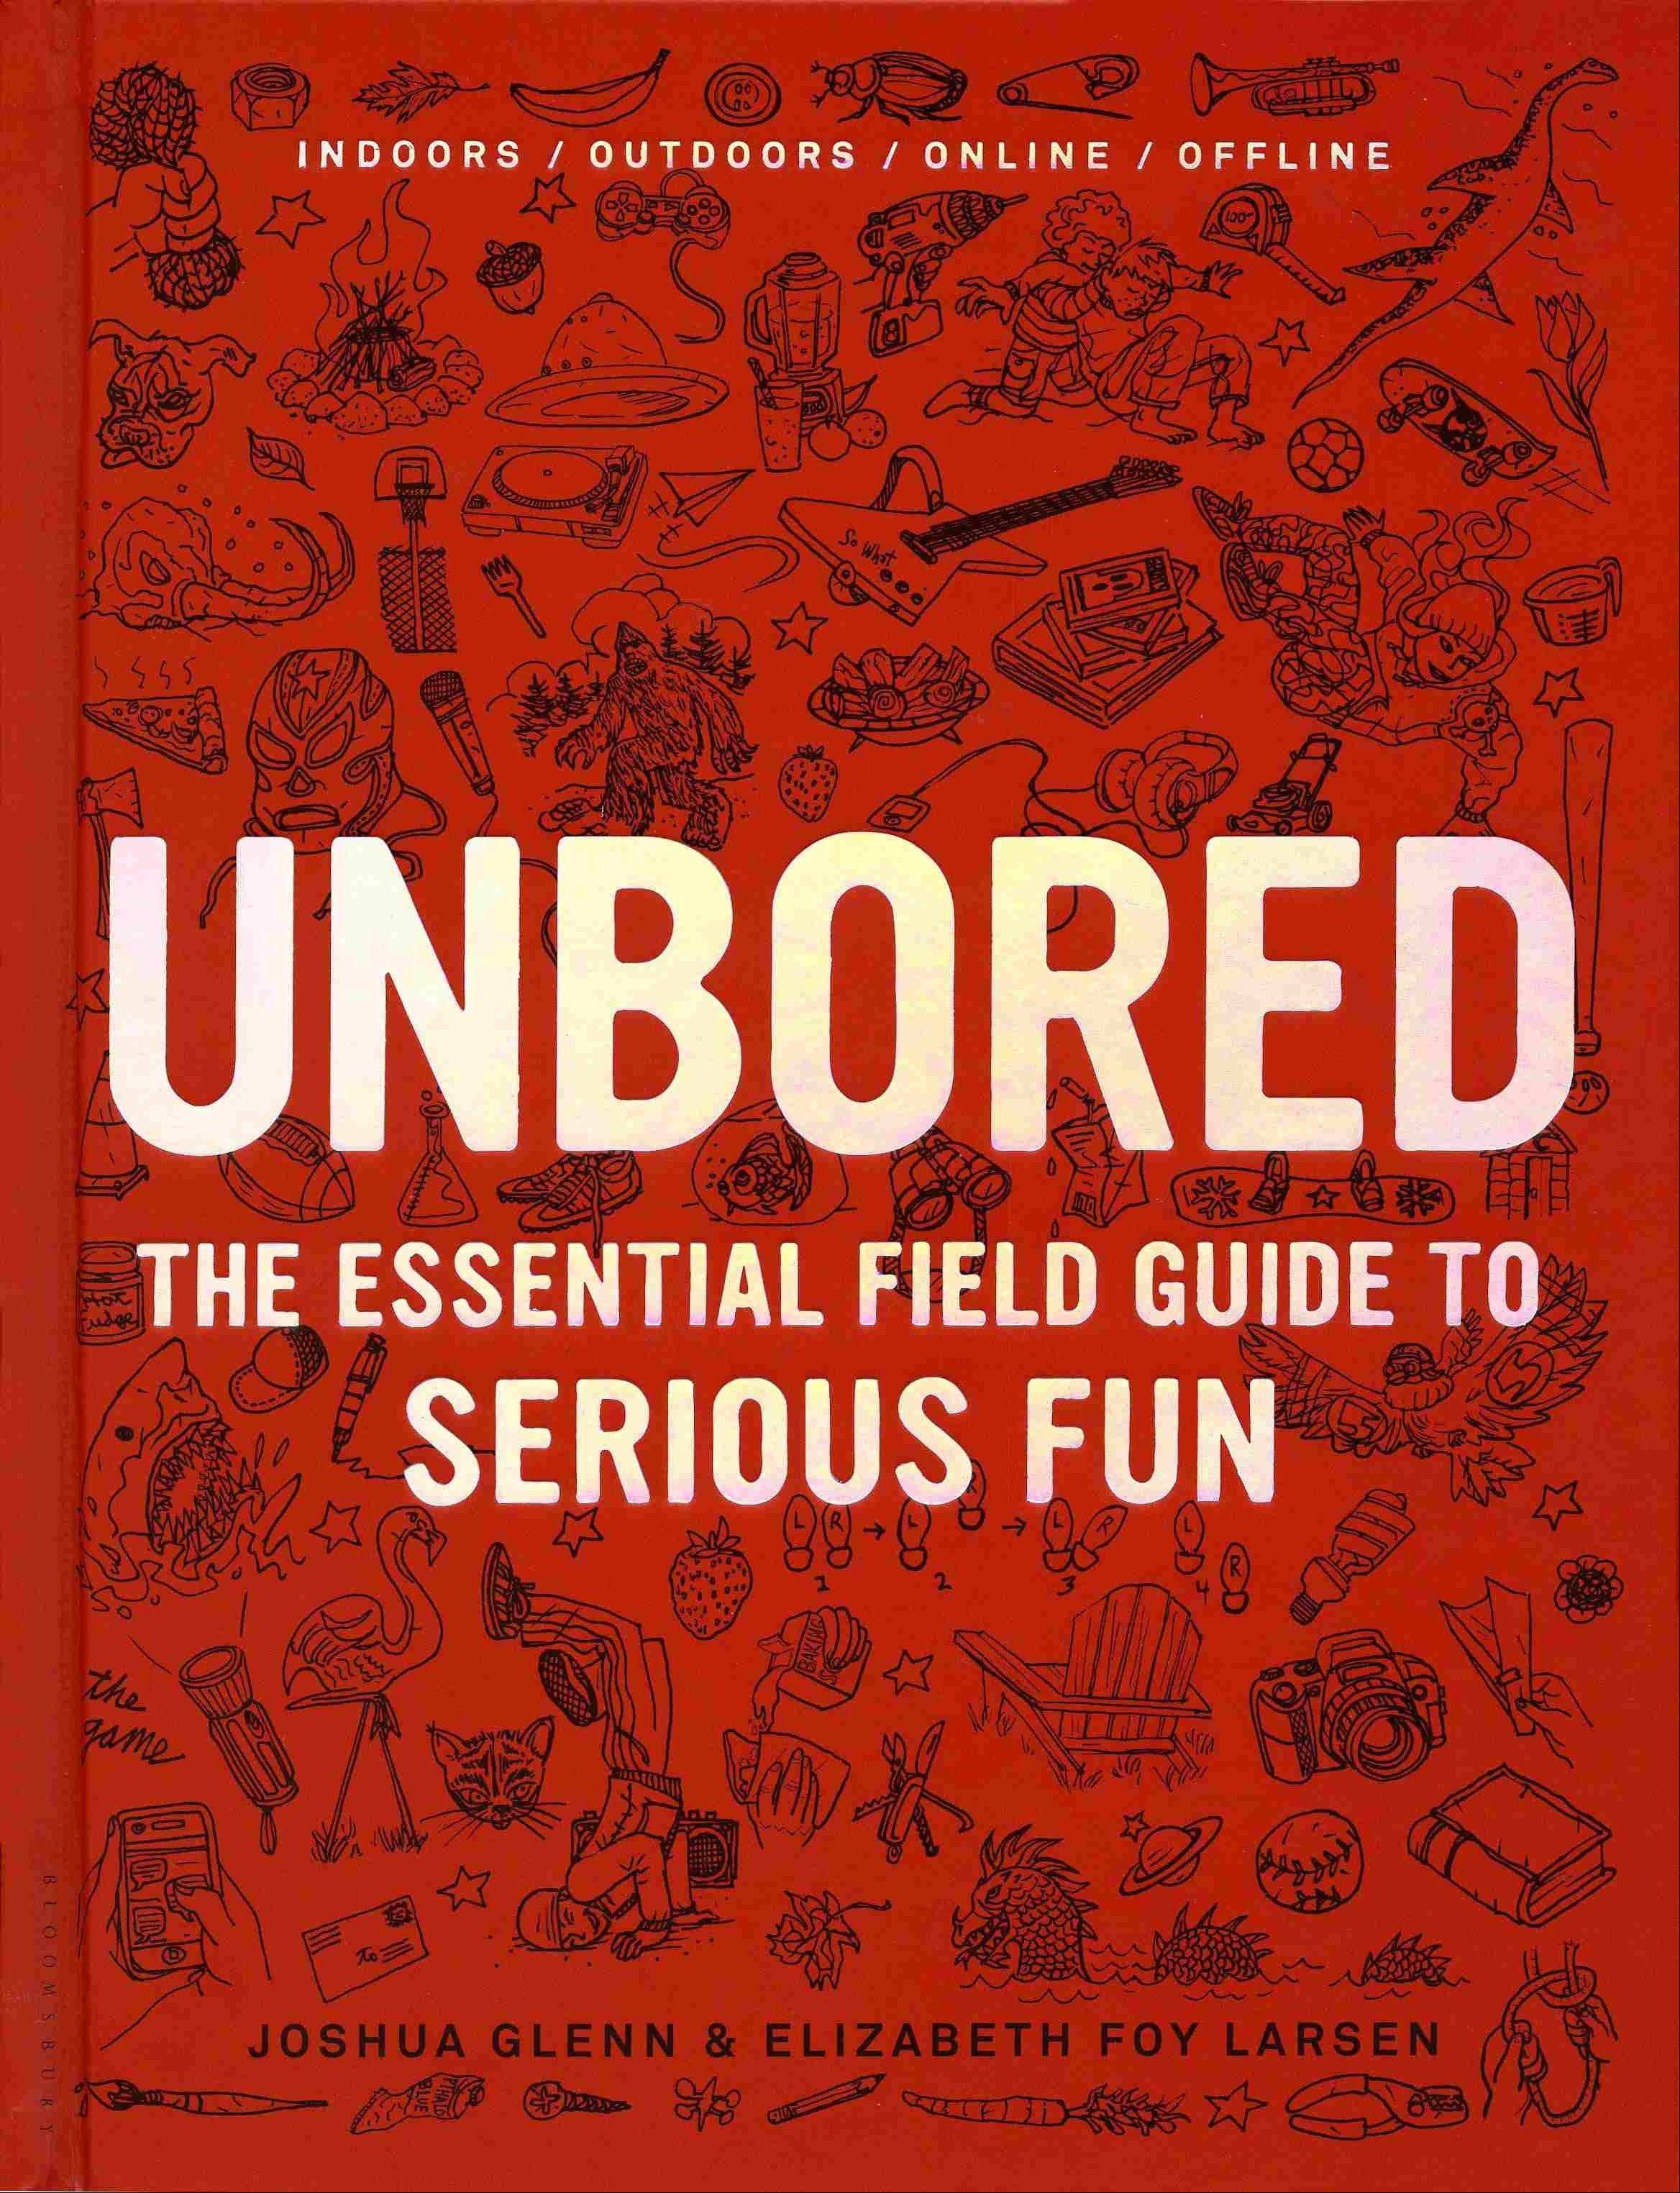 """Unbored: The Essential Field Guide to Serious Fun"" by Joshua Glenn & Elizabeth Foy Larsen (Bloomsbury 2012), $25, 352 pages."